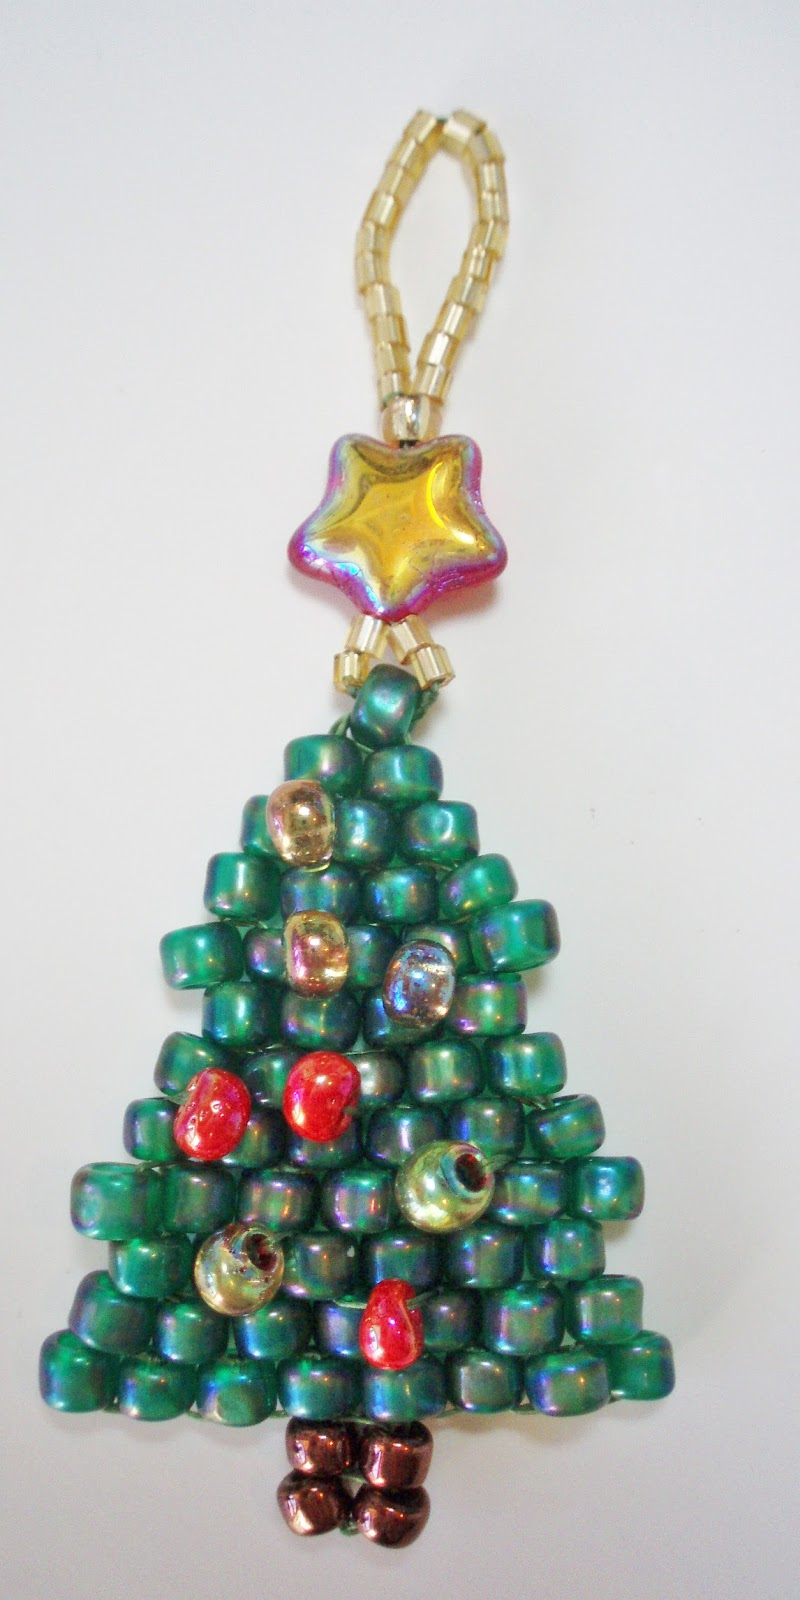 Beaded Christmas Tree Decorations To Make | Search Results | CLARA ...